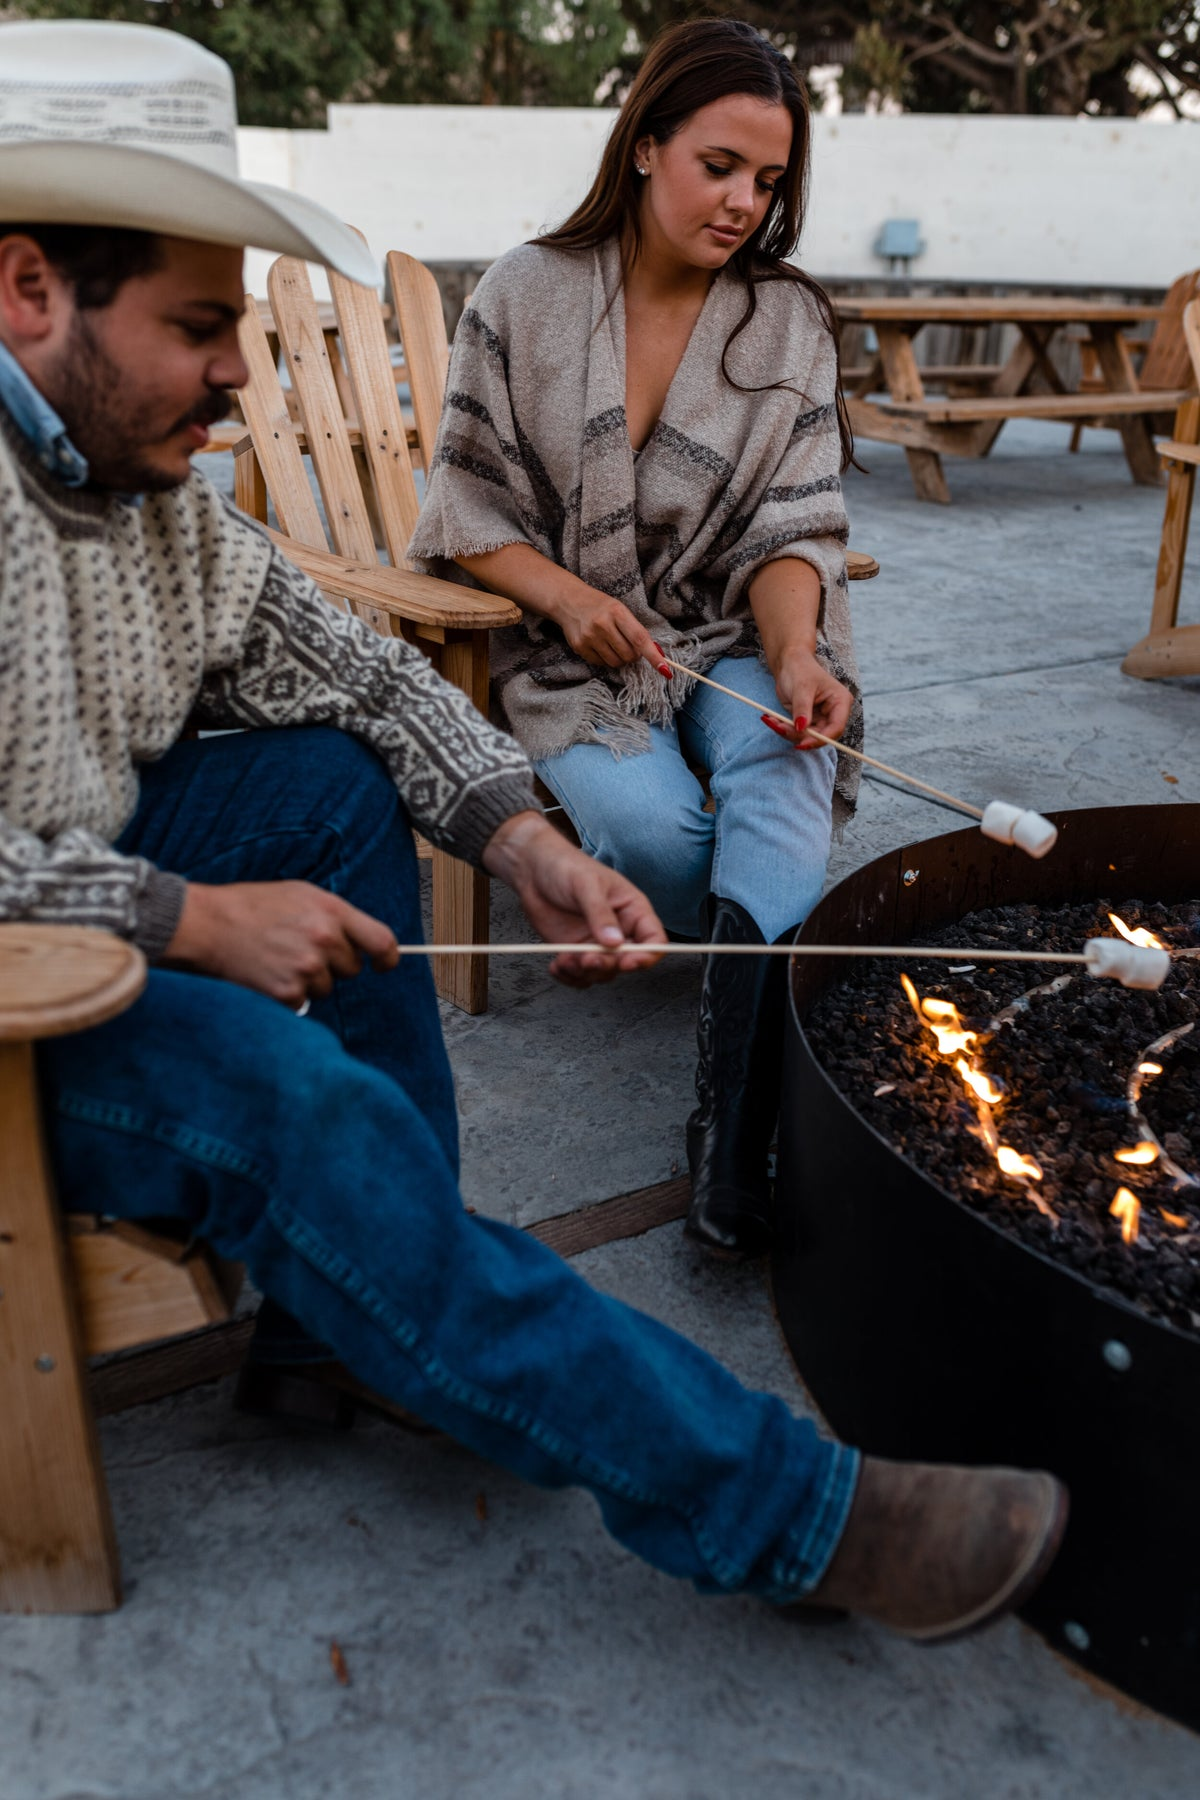 Cuyama Buckhorn, Cuyama - man in a cowboy hat and a woman in a chevron poncho roasting marshmallows over a fire pit